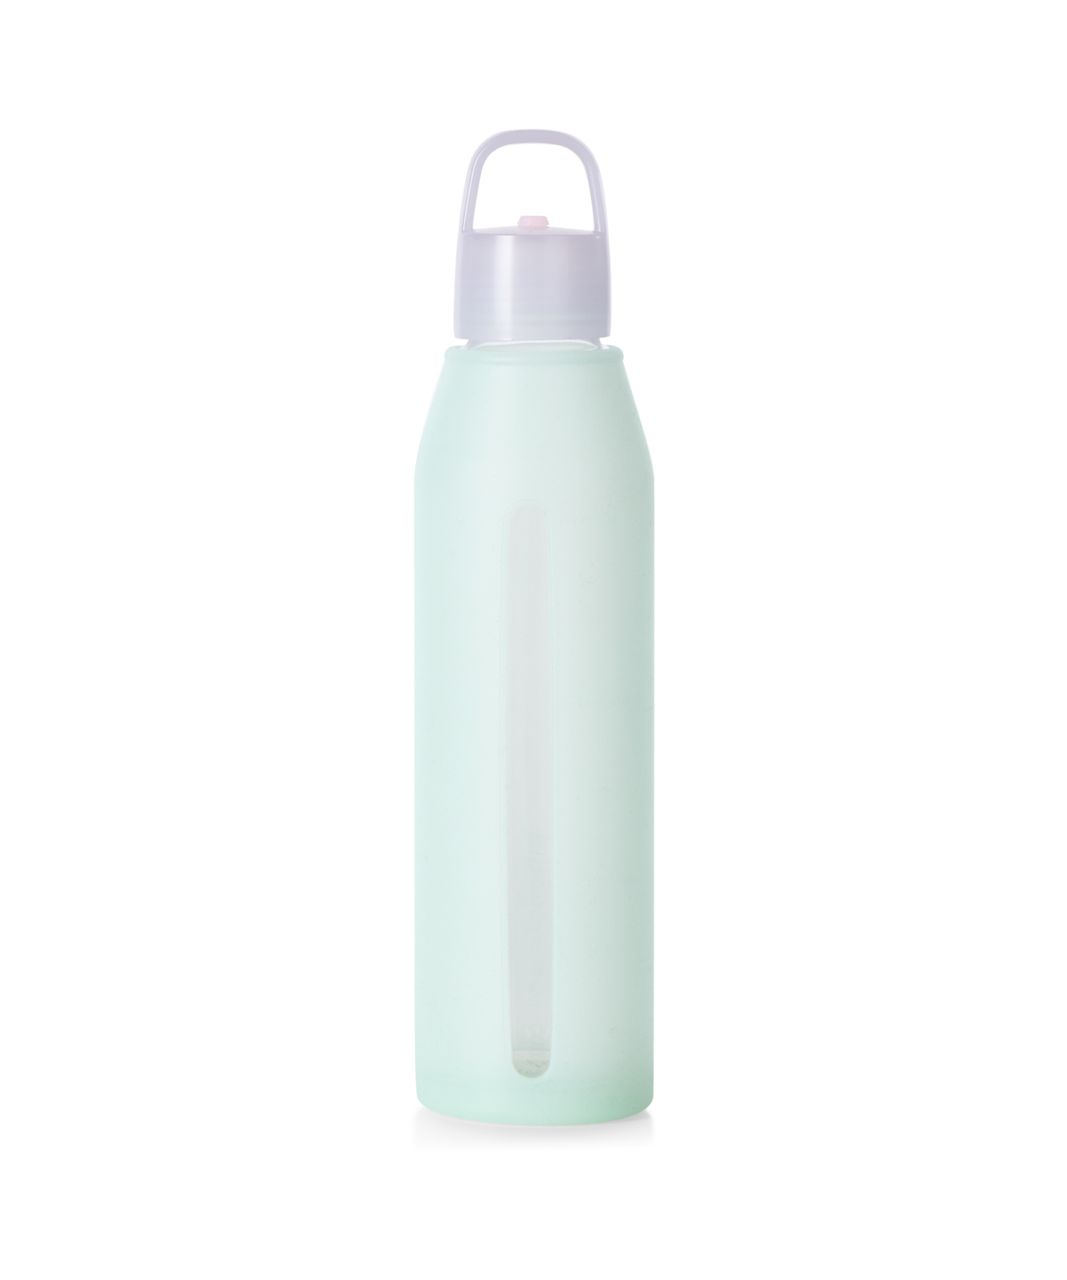 Lululemon H2Om Waterbottle - Menthol / Flash Light